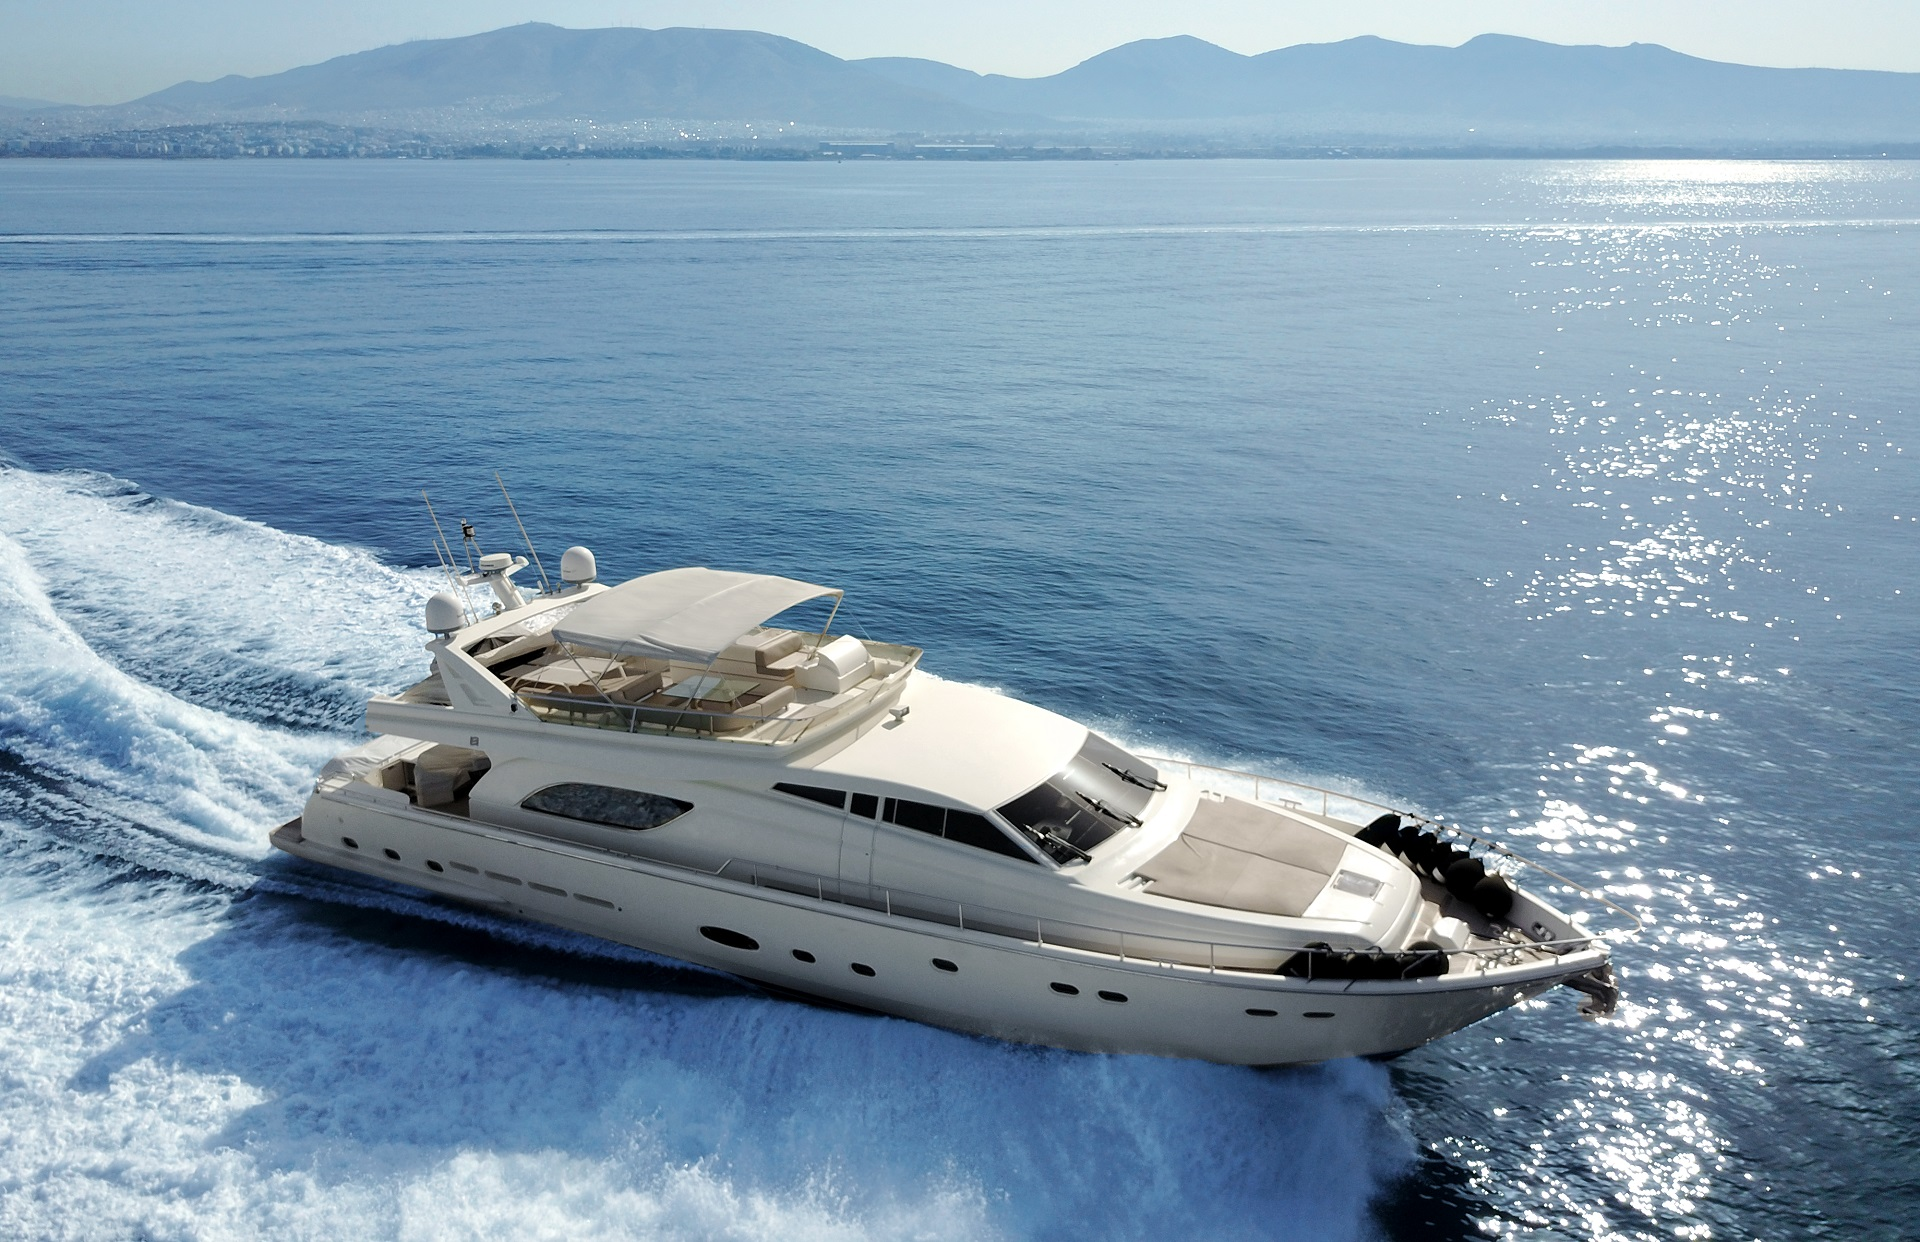 ARMONIA - Motor Yacht for Charter in Greece